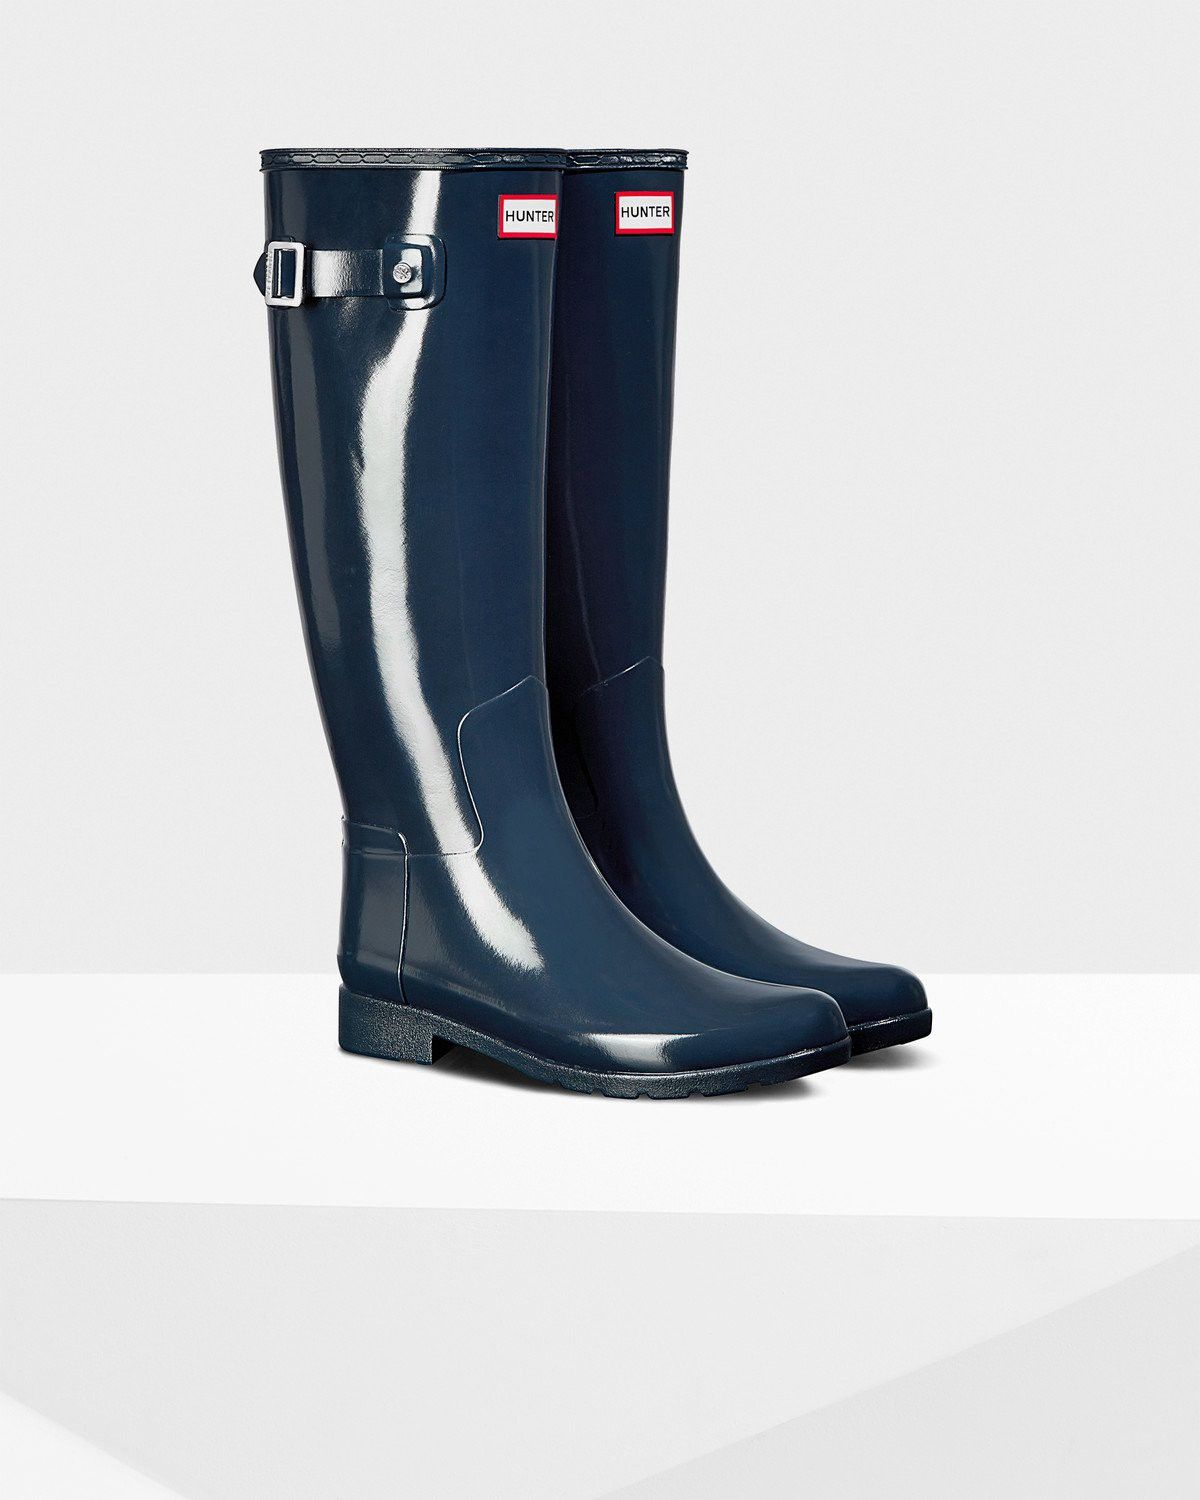 4b8a9bbbb51 Women's Refined Slim Fit Gloss Rain Boots: Navy by Hunter in 2018 ...